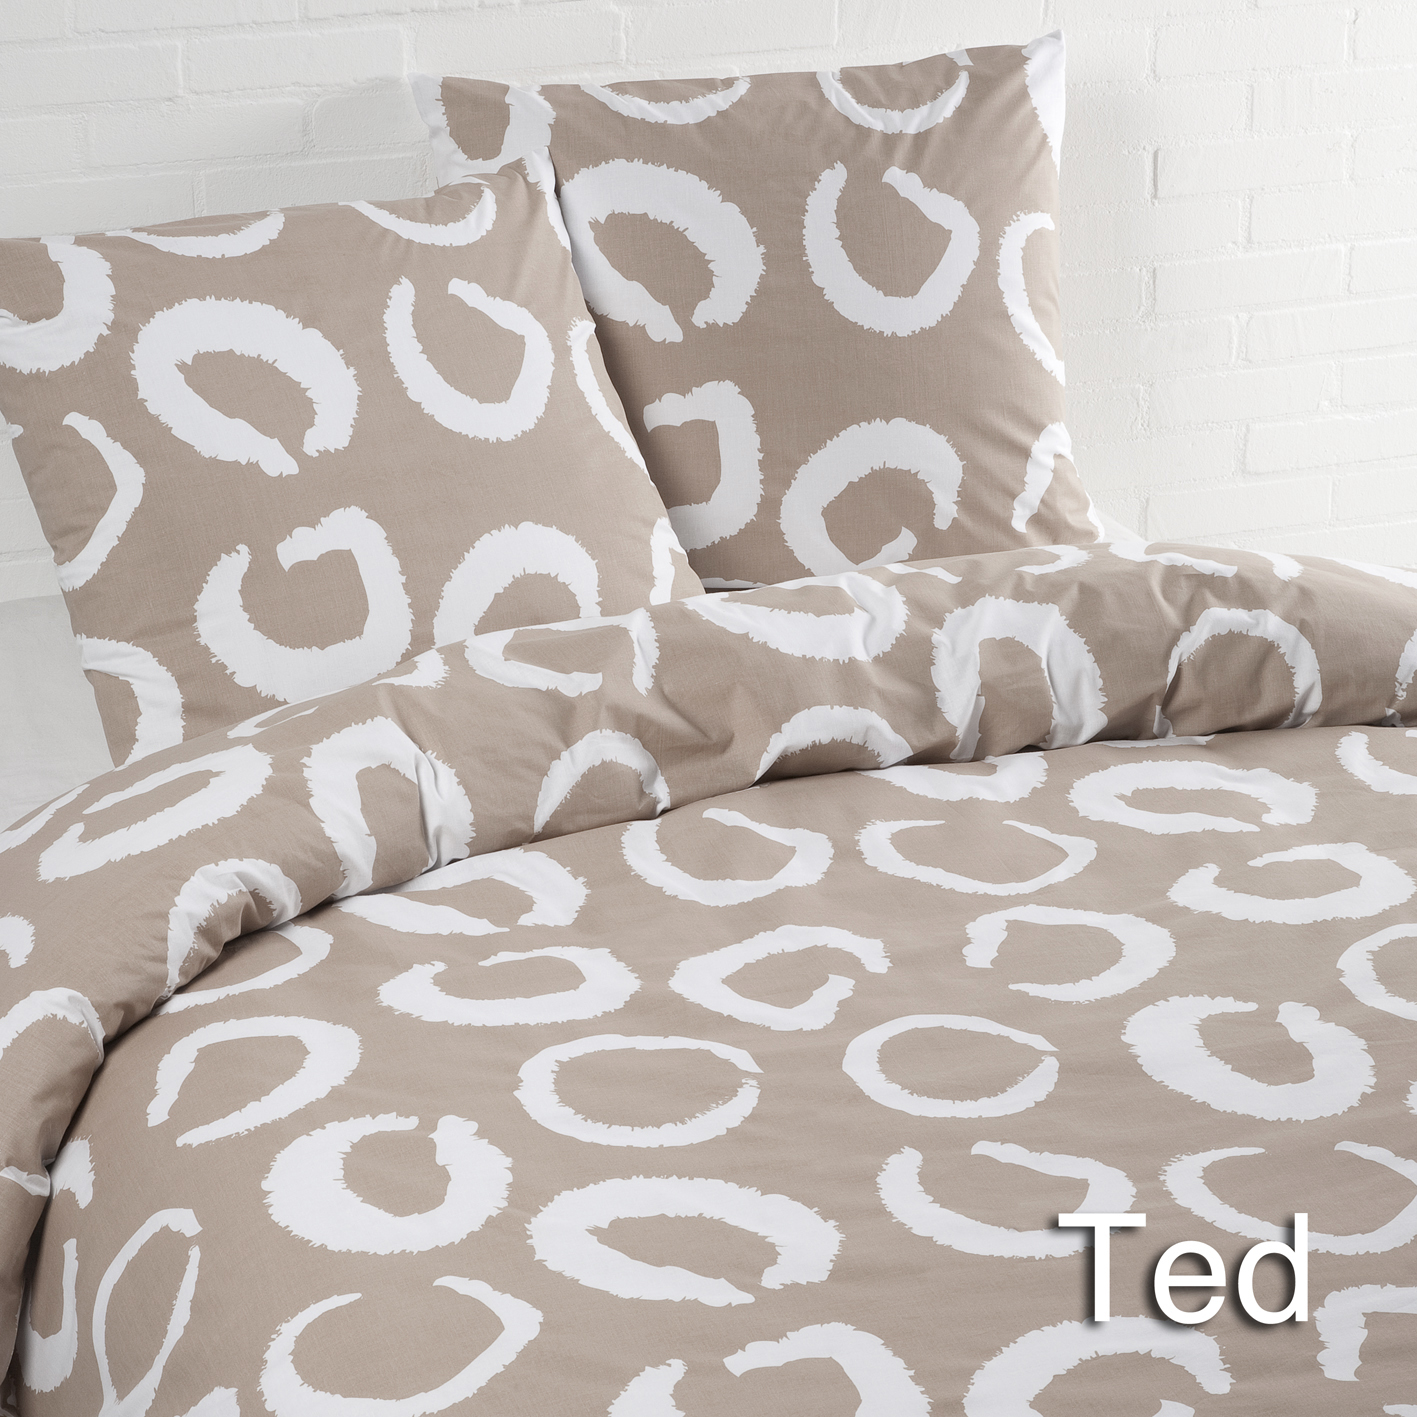 Ted beige